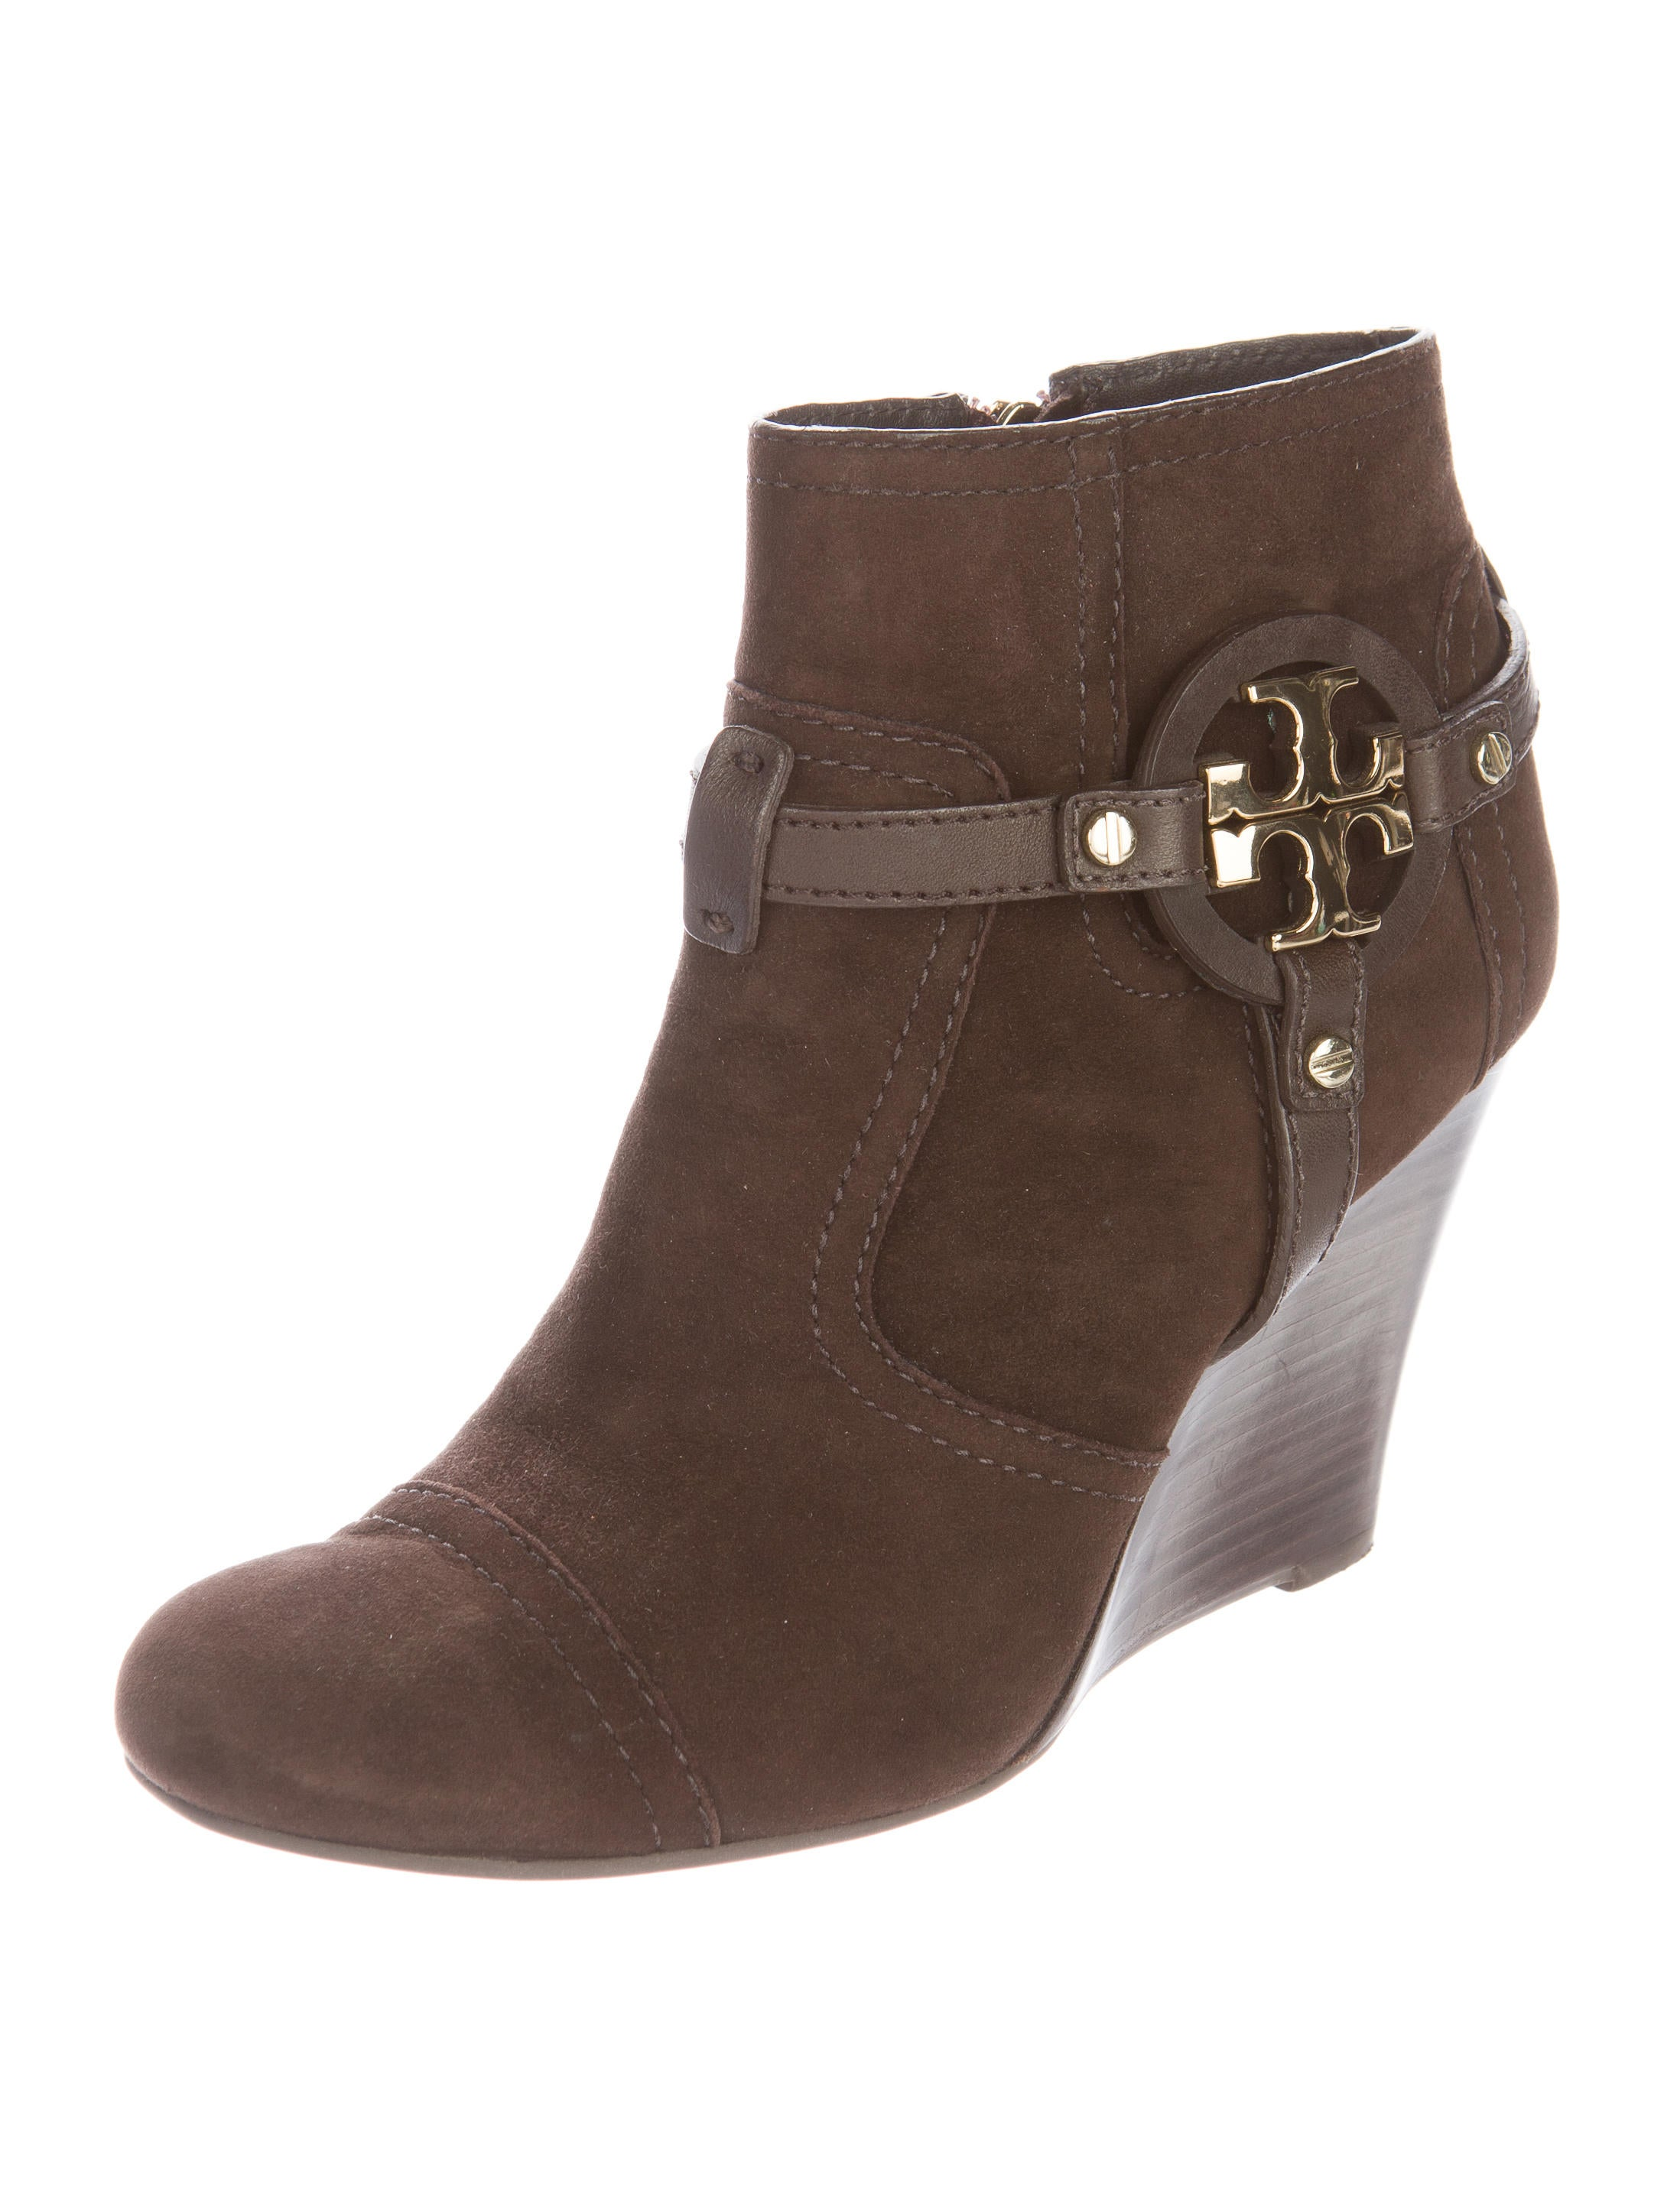 burch suede wedge boots shoes wto89898 the realreal